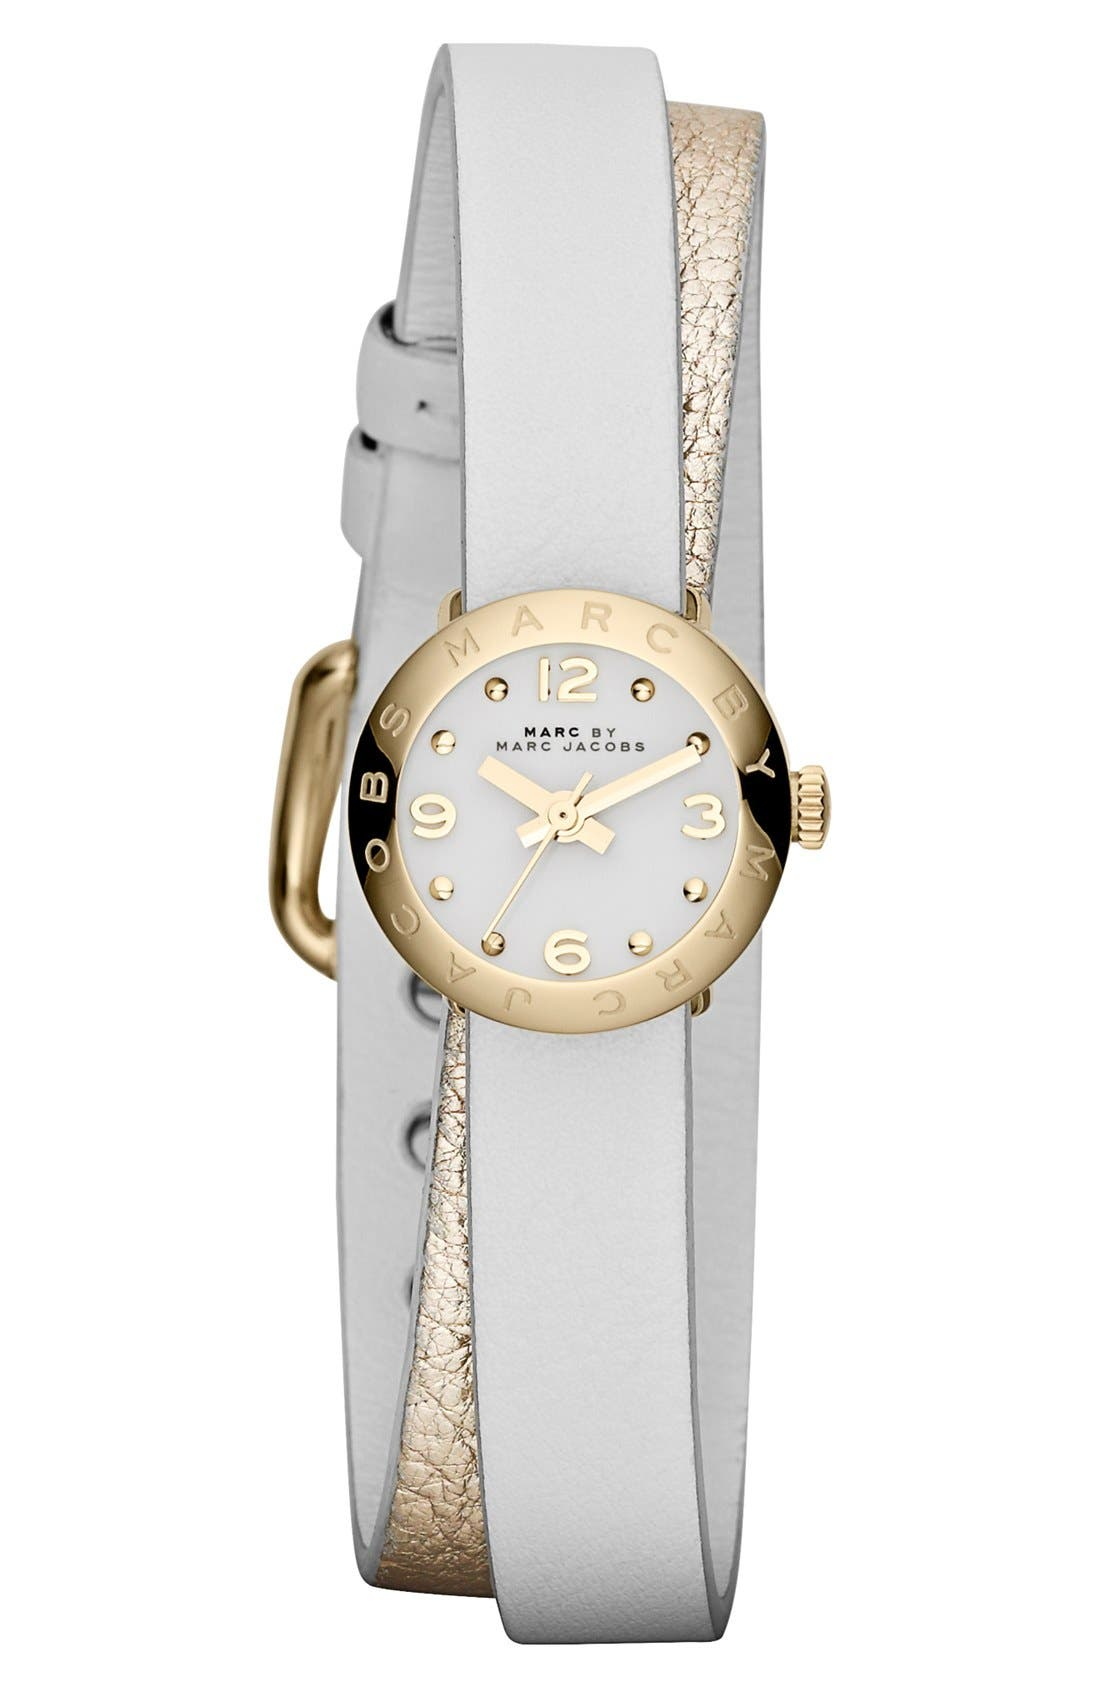 Main Image - MARC JACOBS 'Amy Dinky' Double Wrap Strap Watch, 21mm